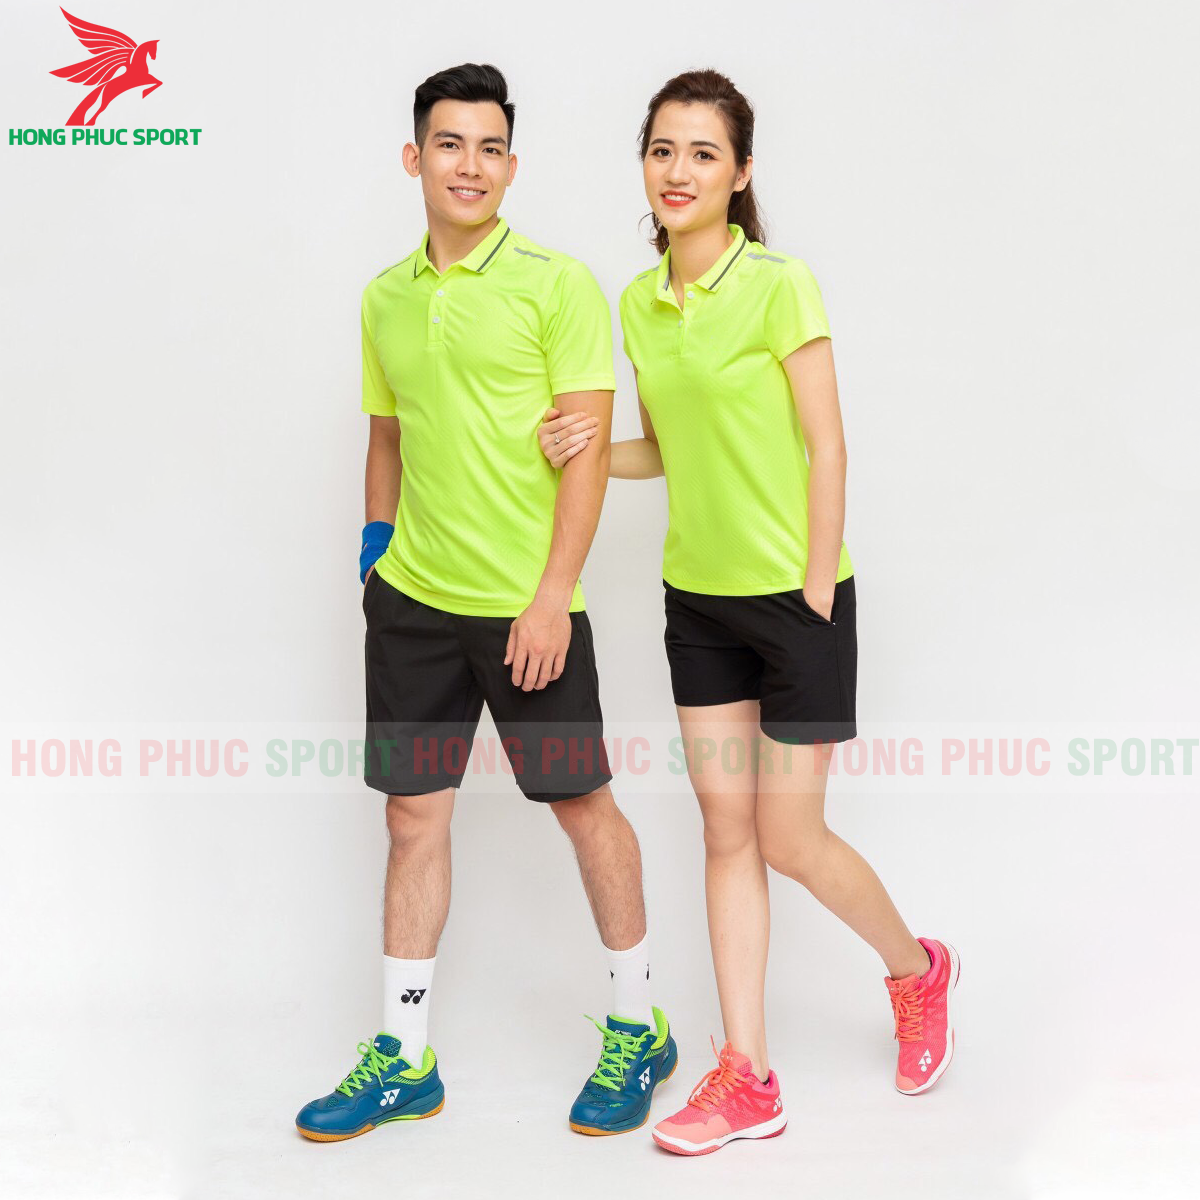 https://cdn.hongphucsport.com/unsafe/s4.shopbay.vn/files/285/bo-qua-ao-tennis-2020-xanh-chuoi-5f76f41d1d49e.png